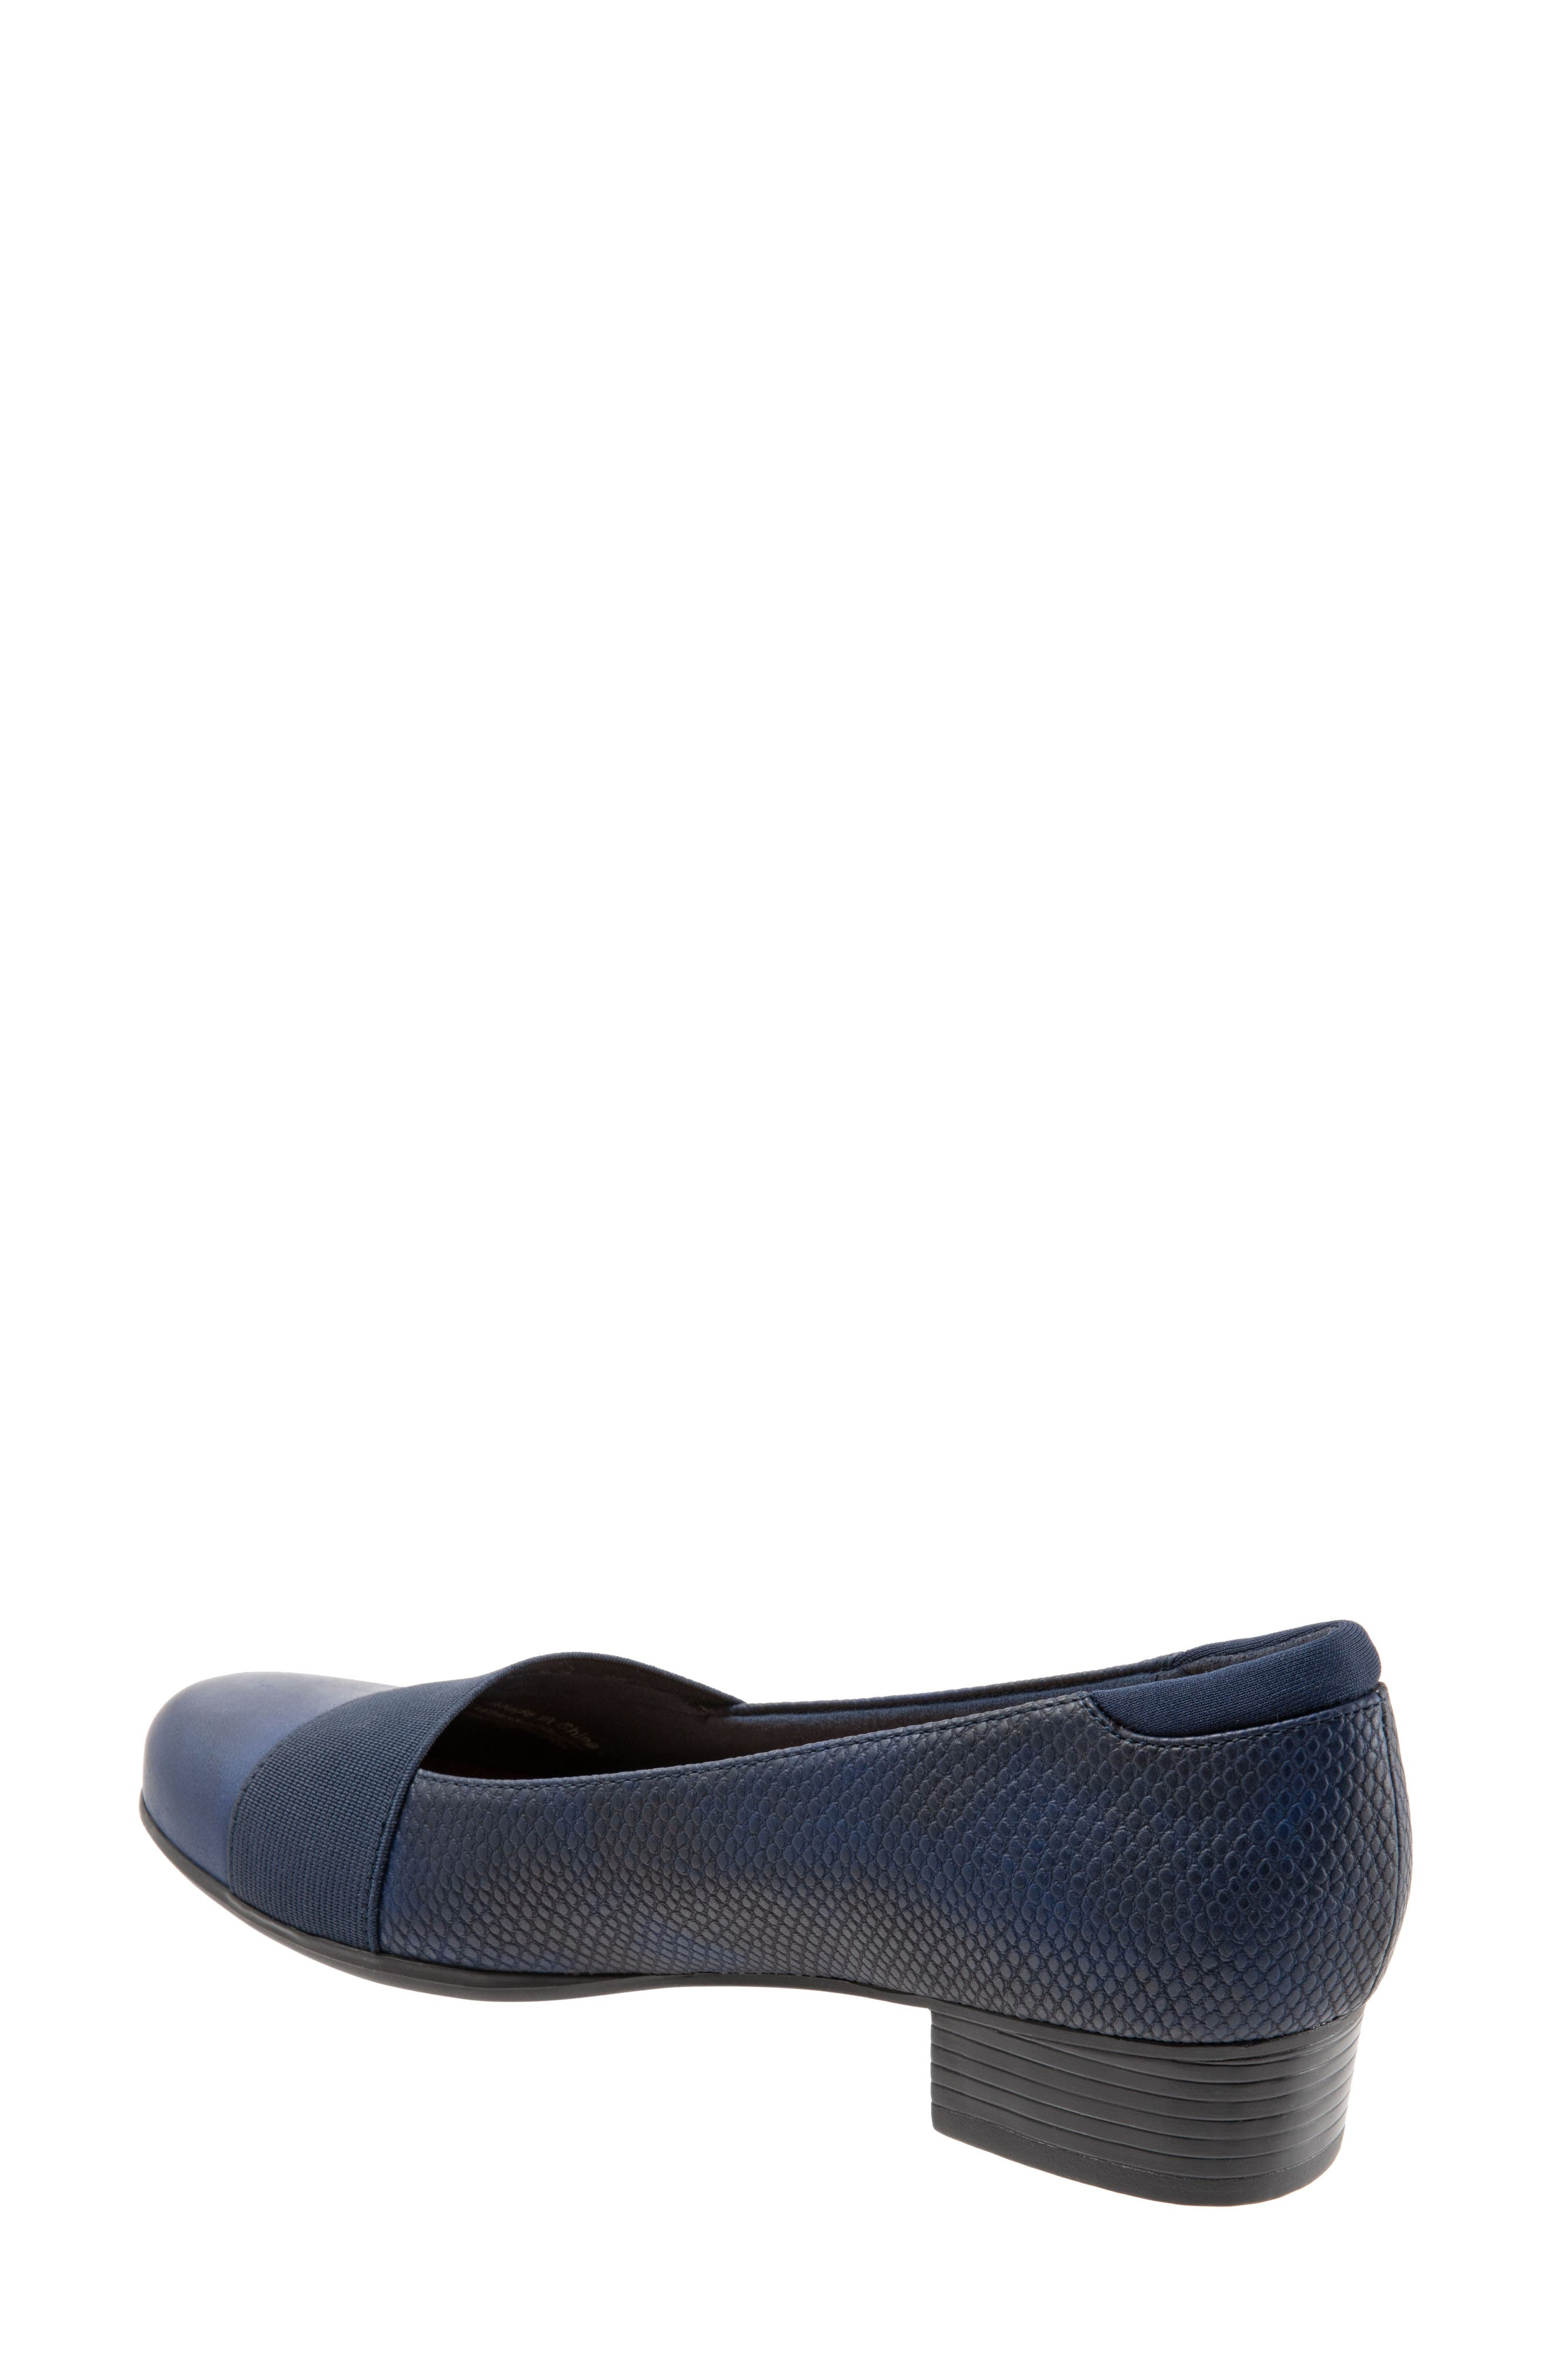 TROTTERS,                             Melinda Loafer,                             Alternate thumbnail 2, color,                             NAVY LEATHER